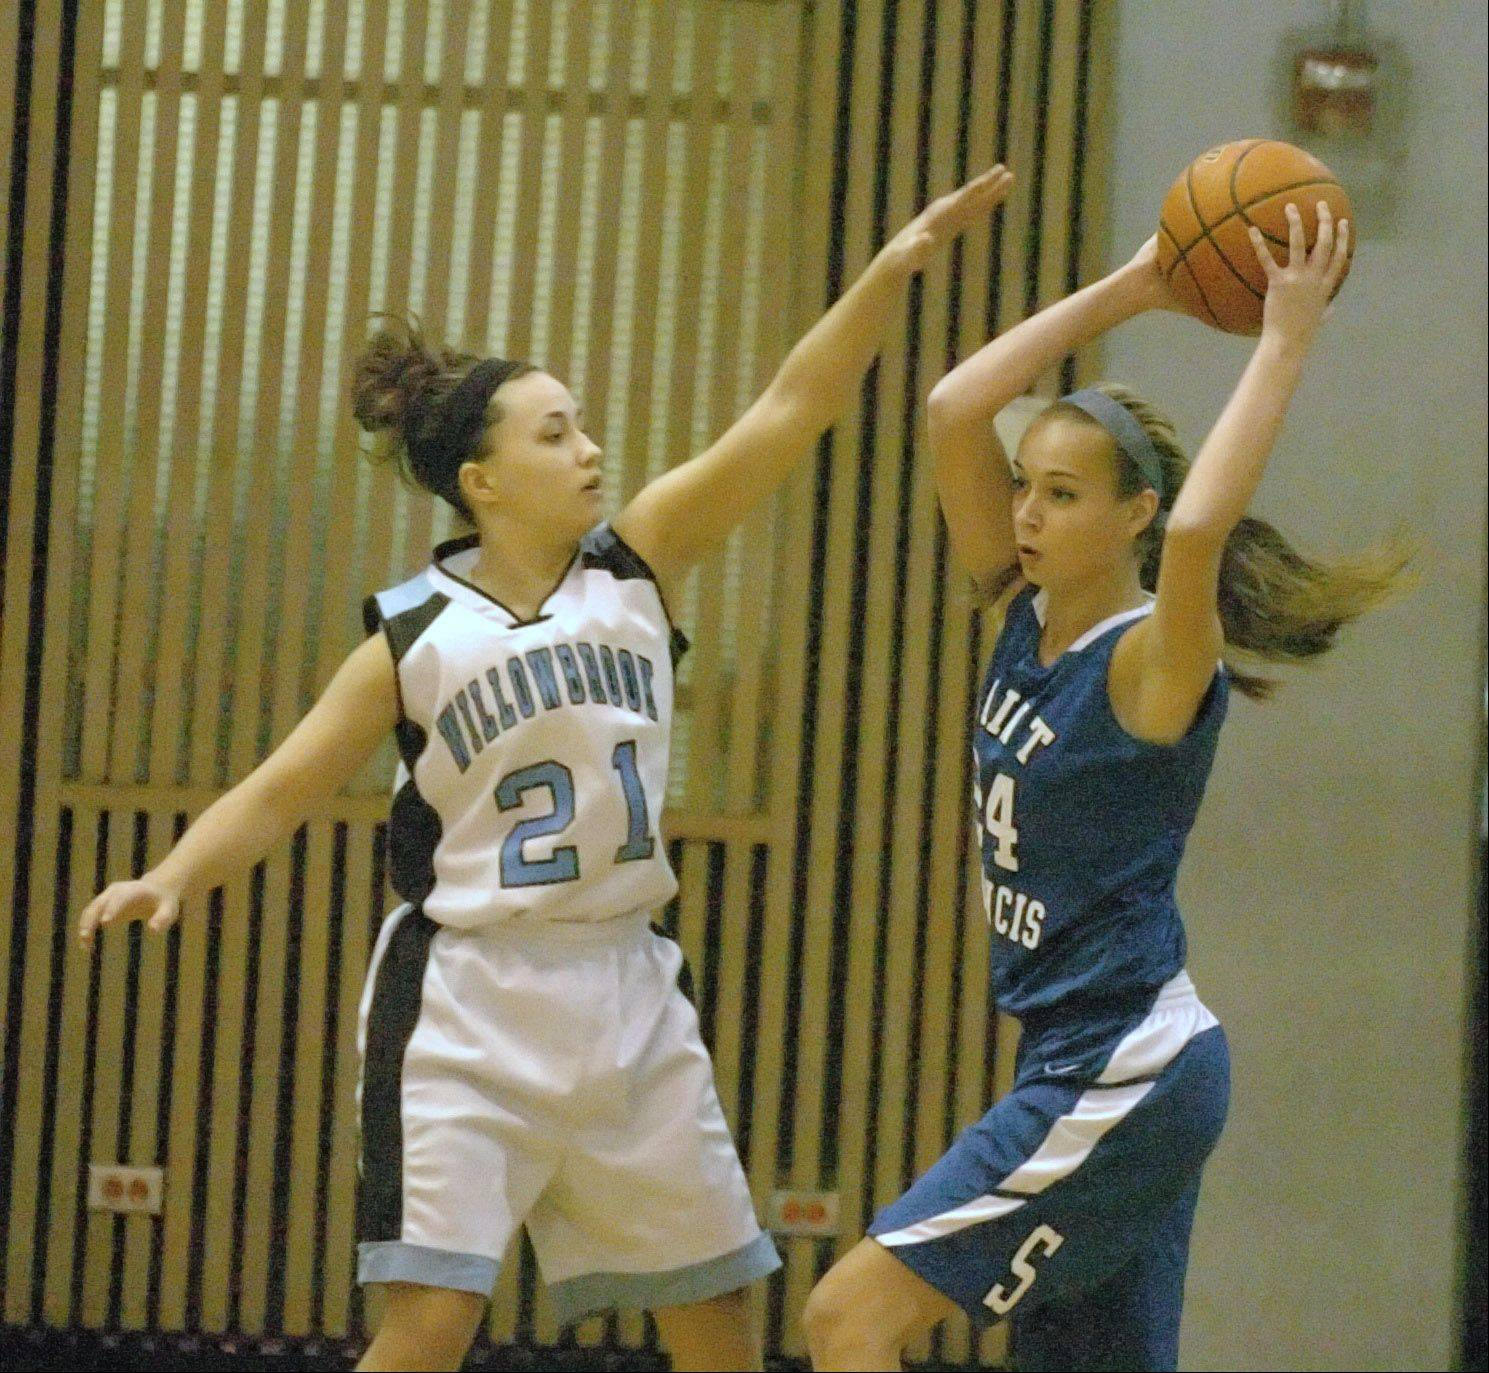 Abby Pakeltis,left, of Willowbrook tries to stop Hanna Malak of St. Francis. This took place during the St. Francis at Willowbrook 19th annual Willowbrook Warriors Thanksgiving Invite Thursday.